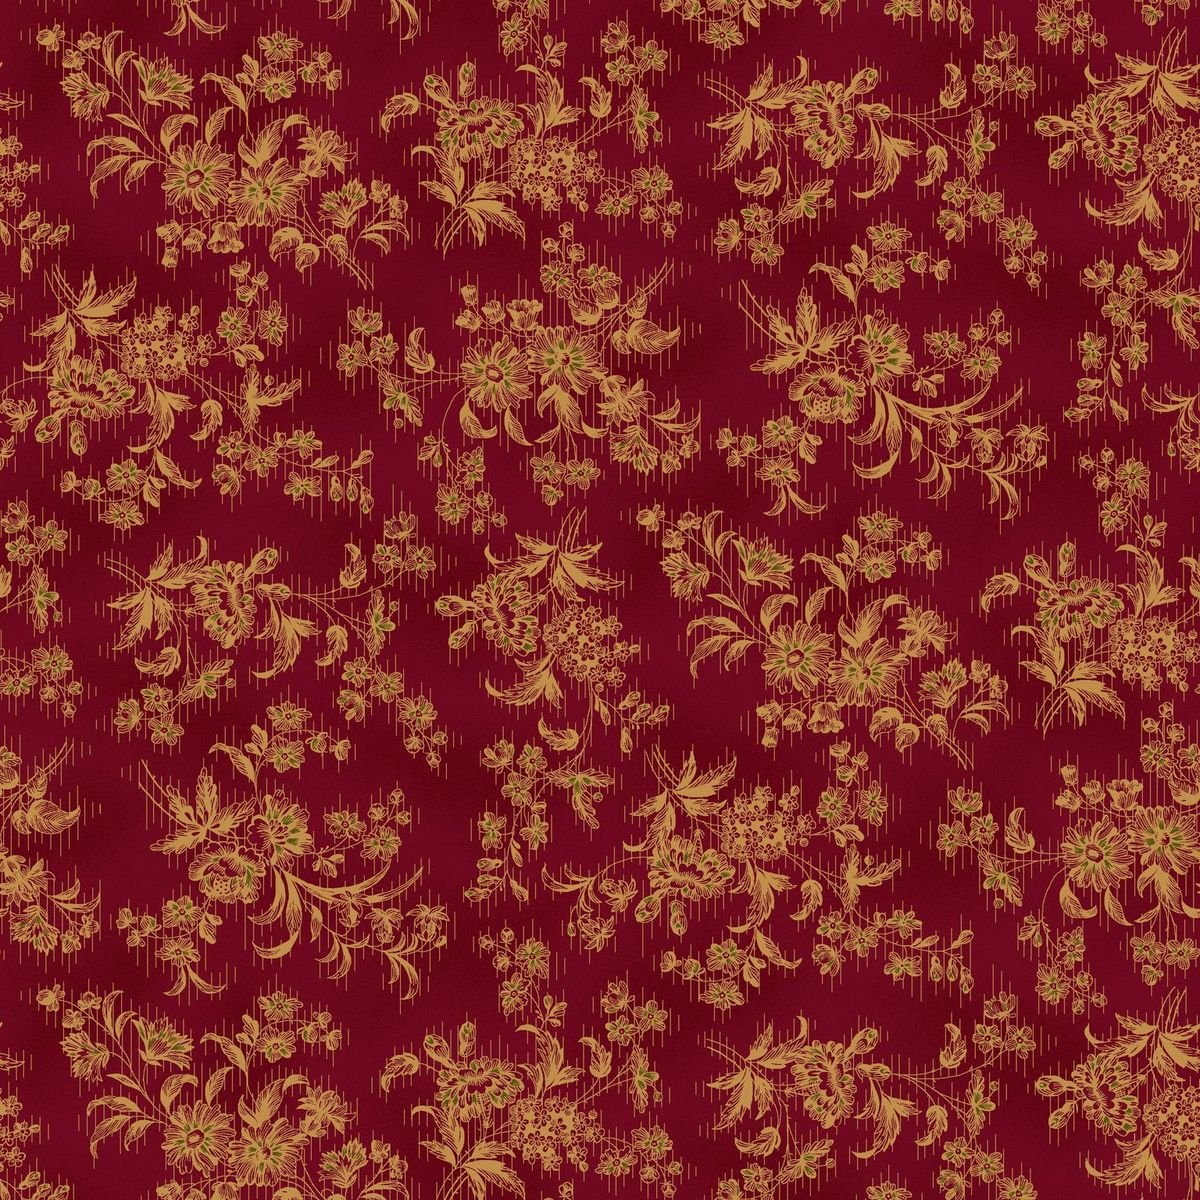 HG-Farmhouse Christmas 9676-88 Red - Stylized Floral